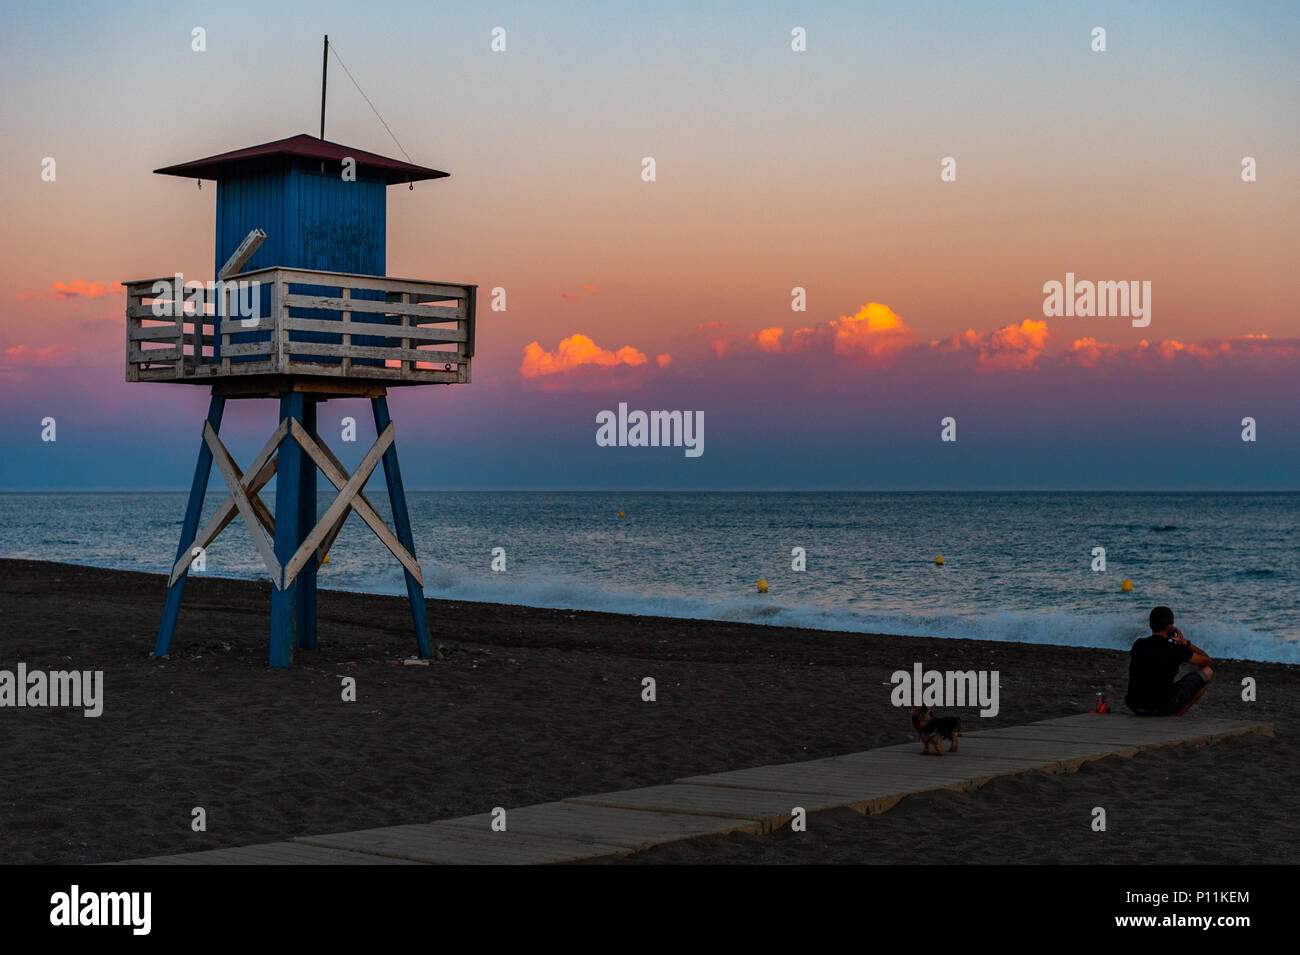 man-and-his-dog-on-the-beach-next-to-a-lifeguard-tower-at-sunset-in-axarqua-la-cala-del-moral-municipality-of-rincn-de-la-victoria-spain-P11KEM.jpg